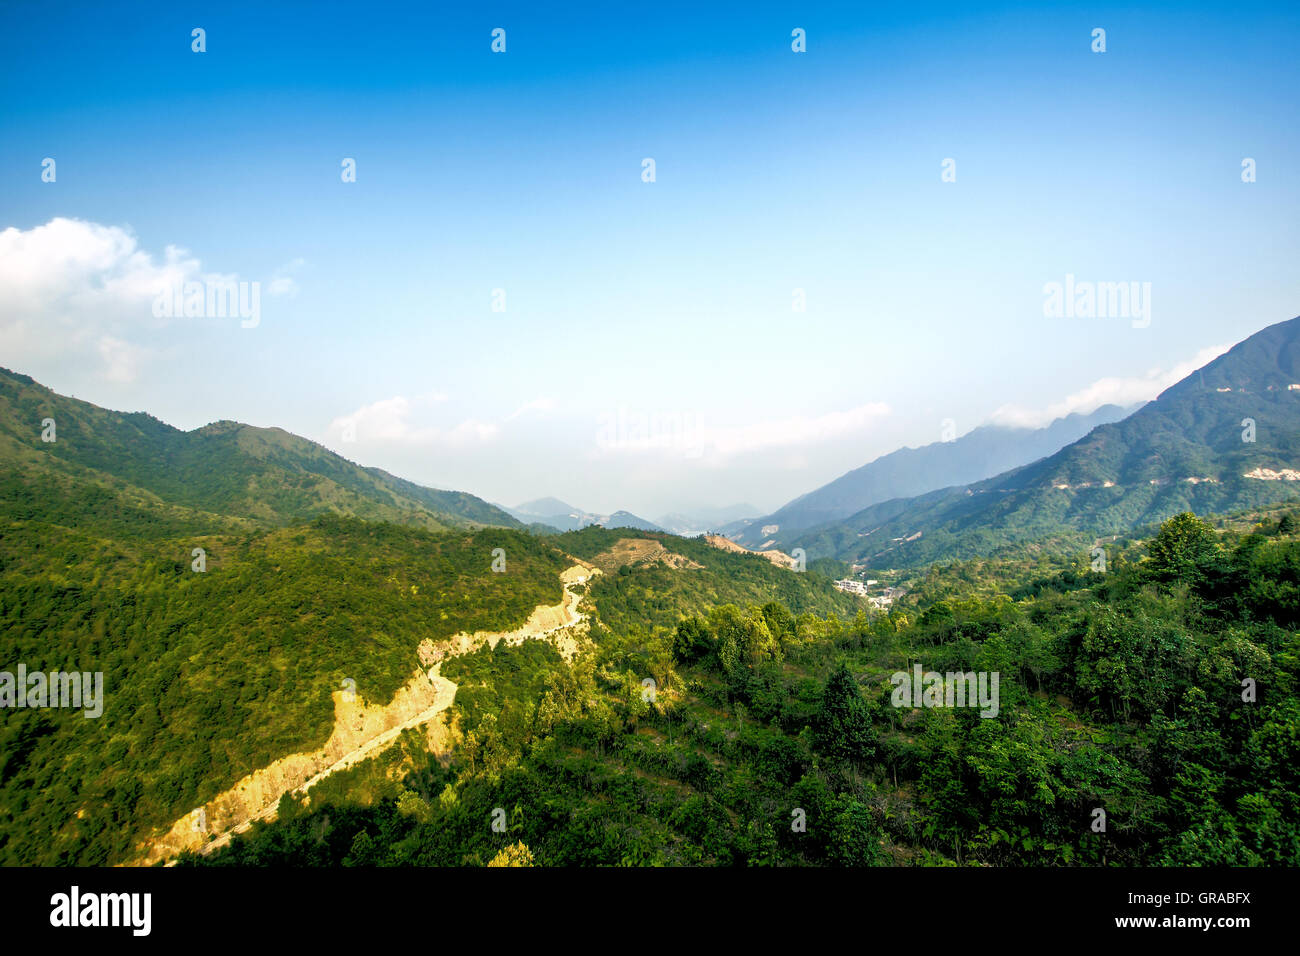 Blue sky and white clouds Castle Peak natural scenery - Stock Image